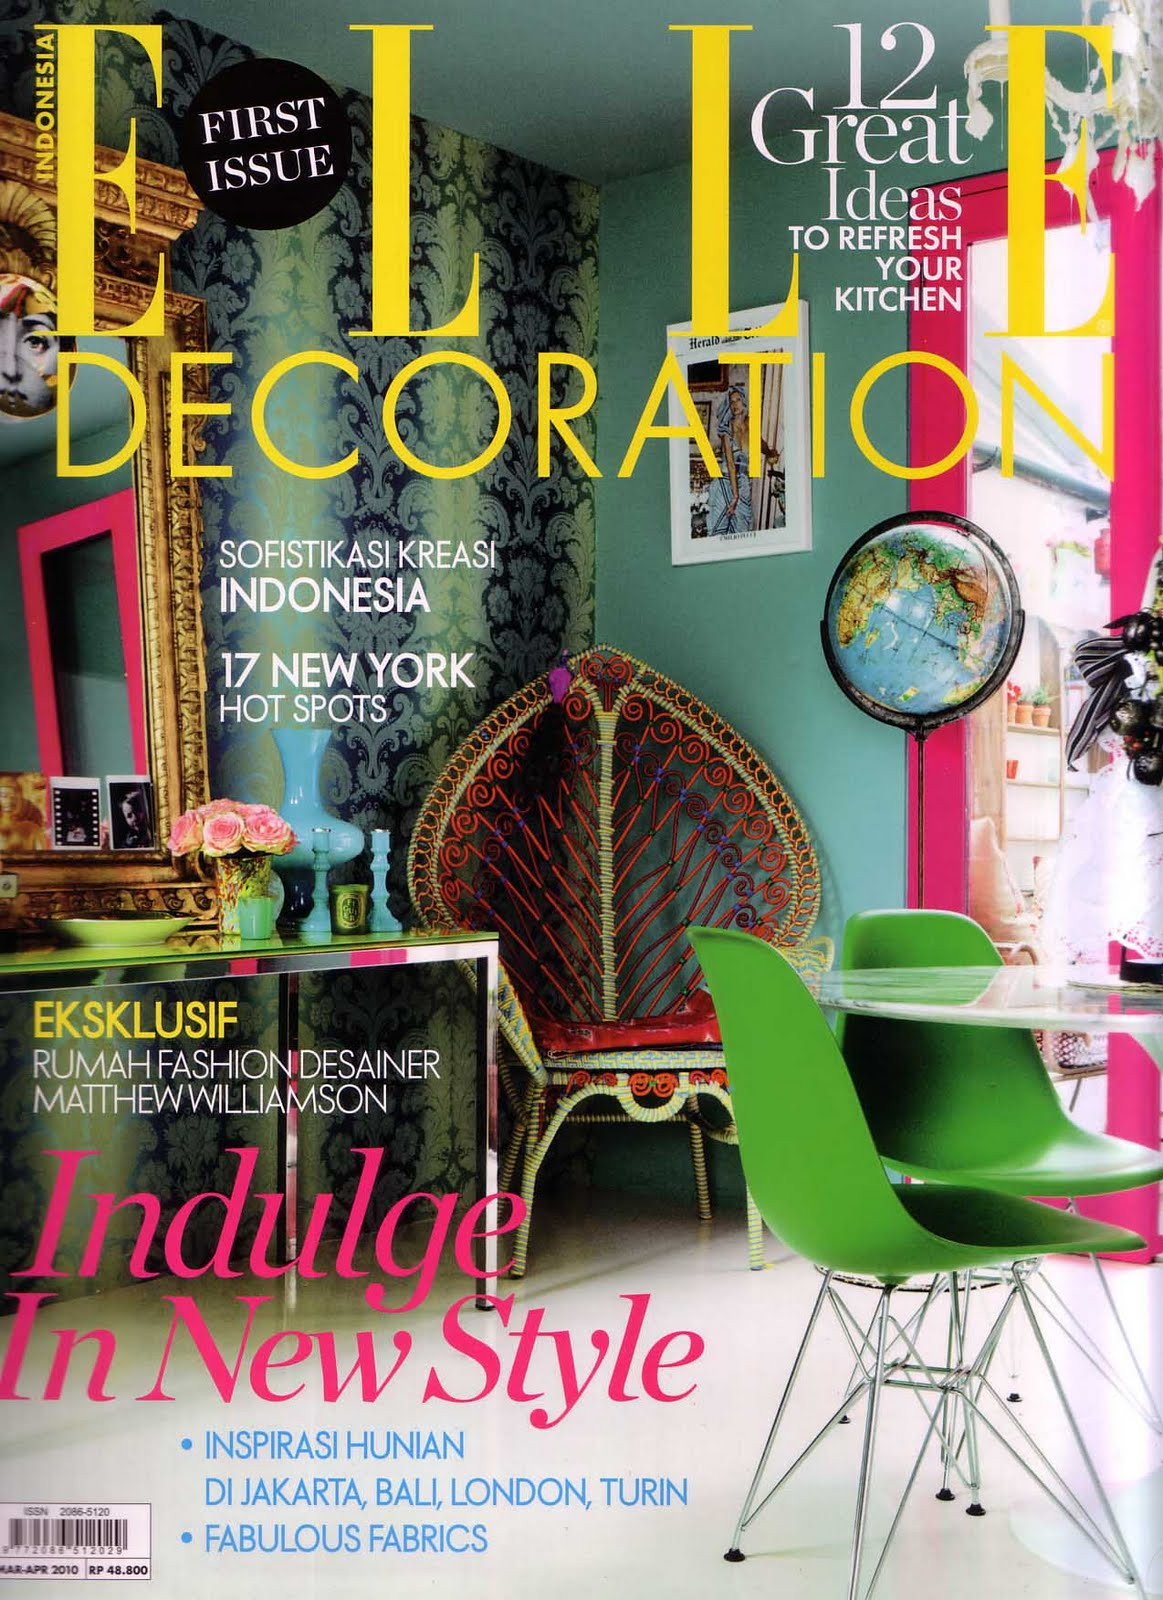 MALACHI LIVING: INDONESIAN INTERIOR DESIGN MAGAZINES